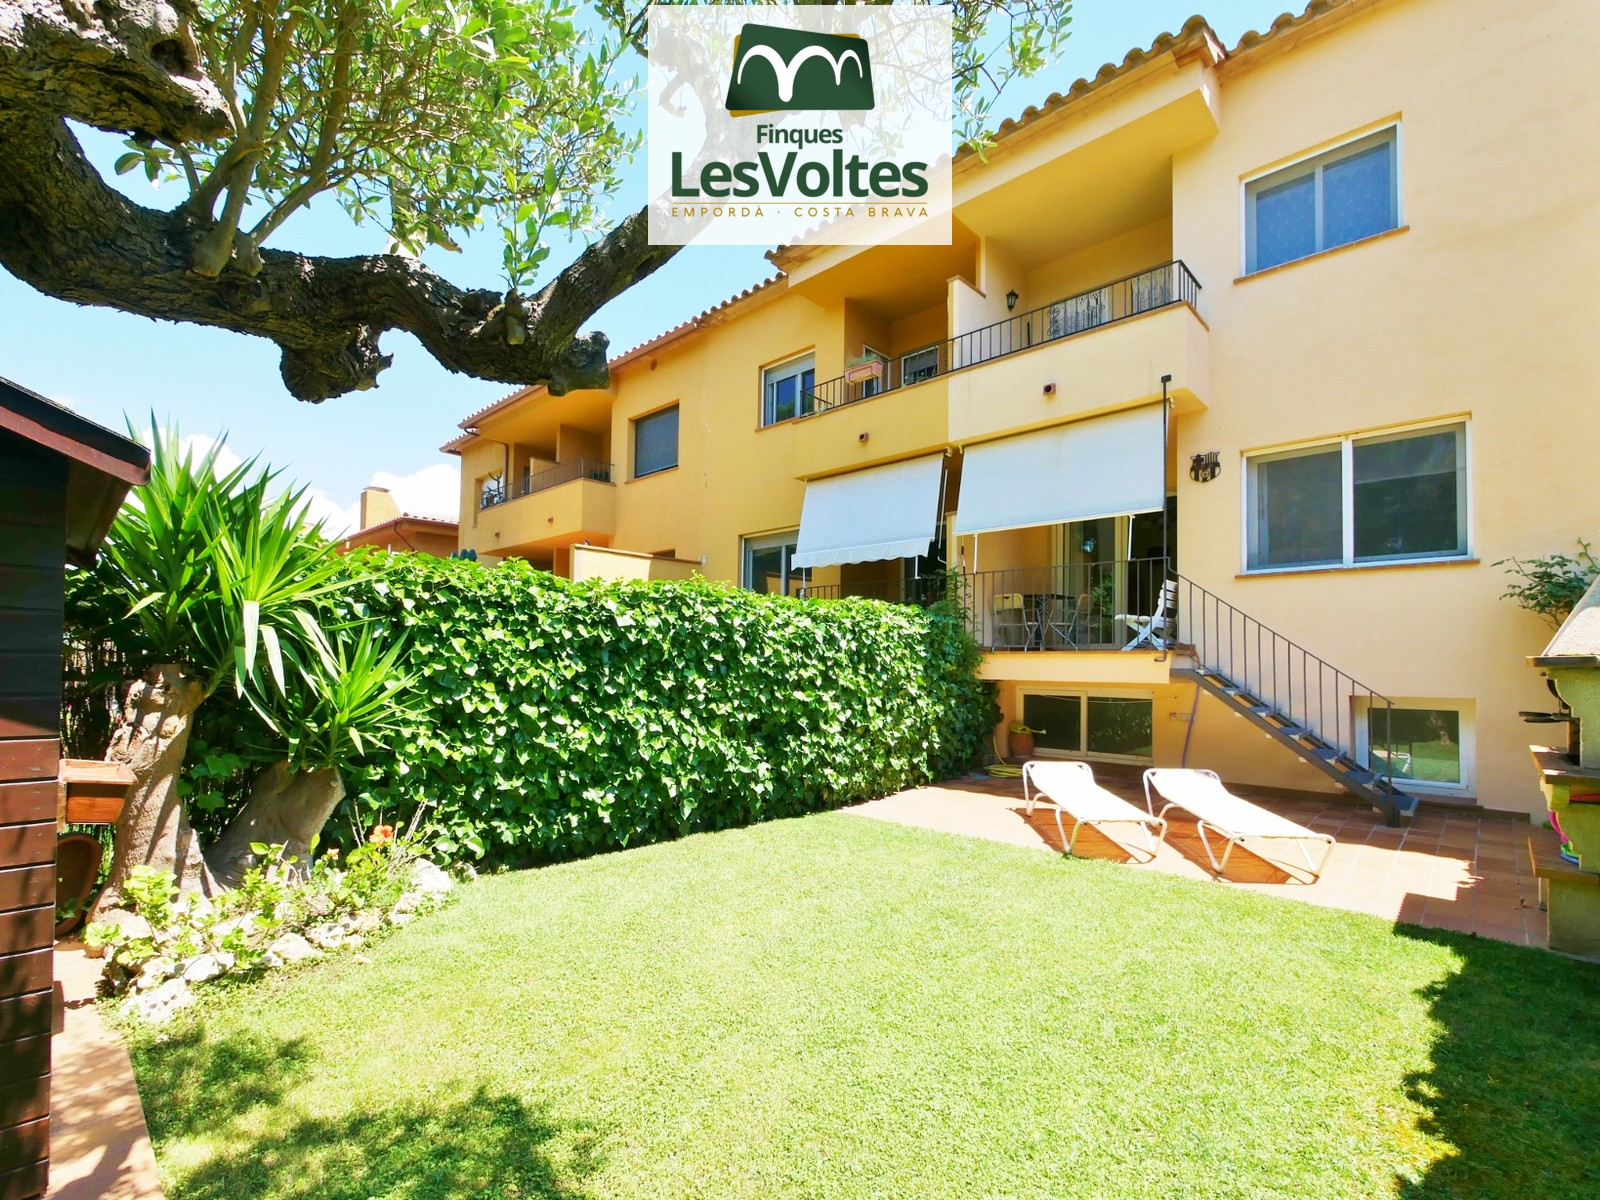 House with garden and garage for sale in Palafrugell. Pi Verd zone.